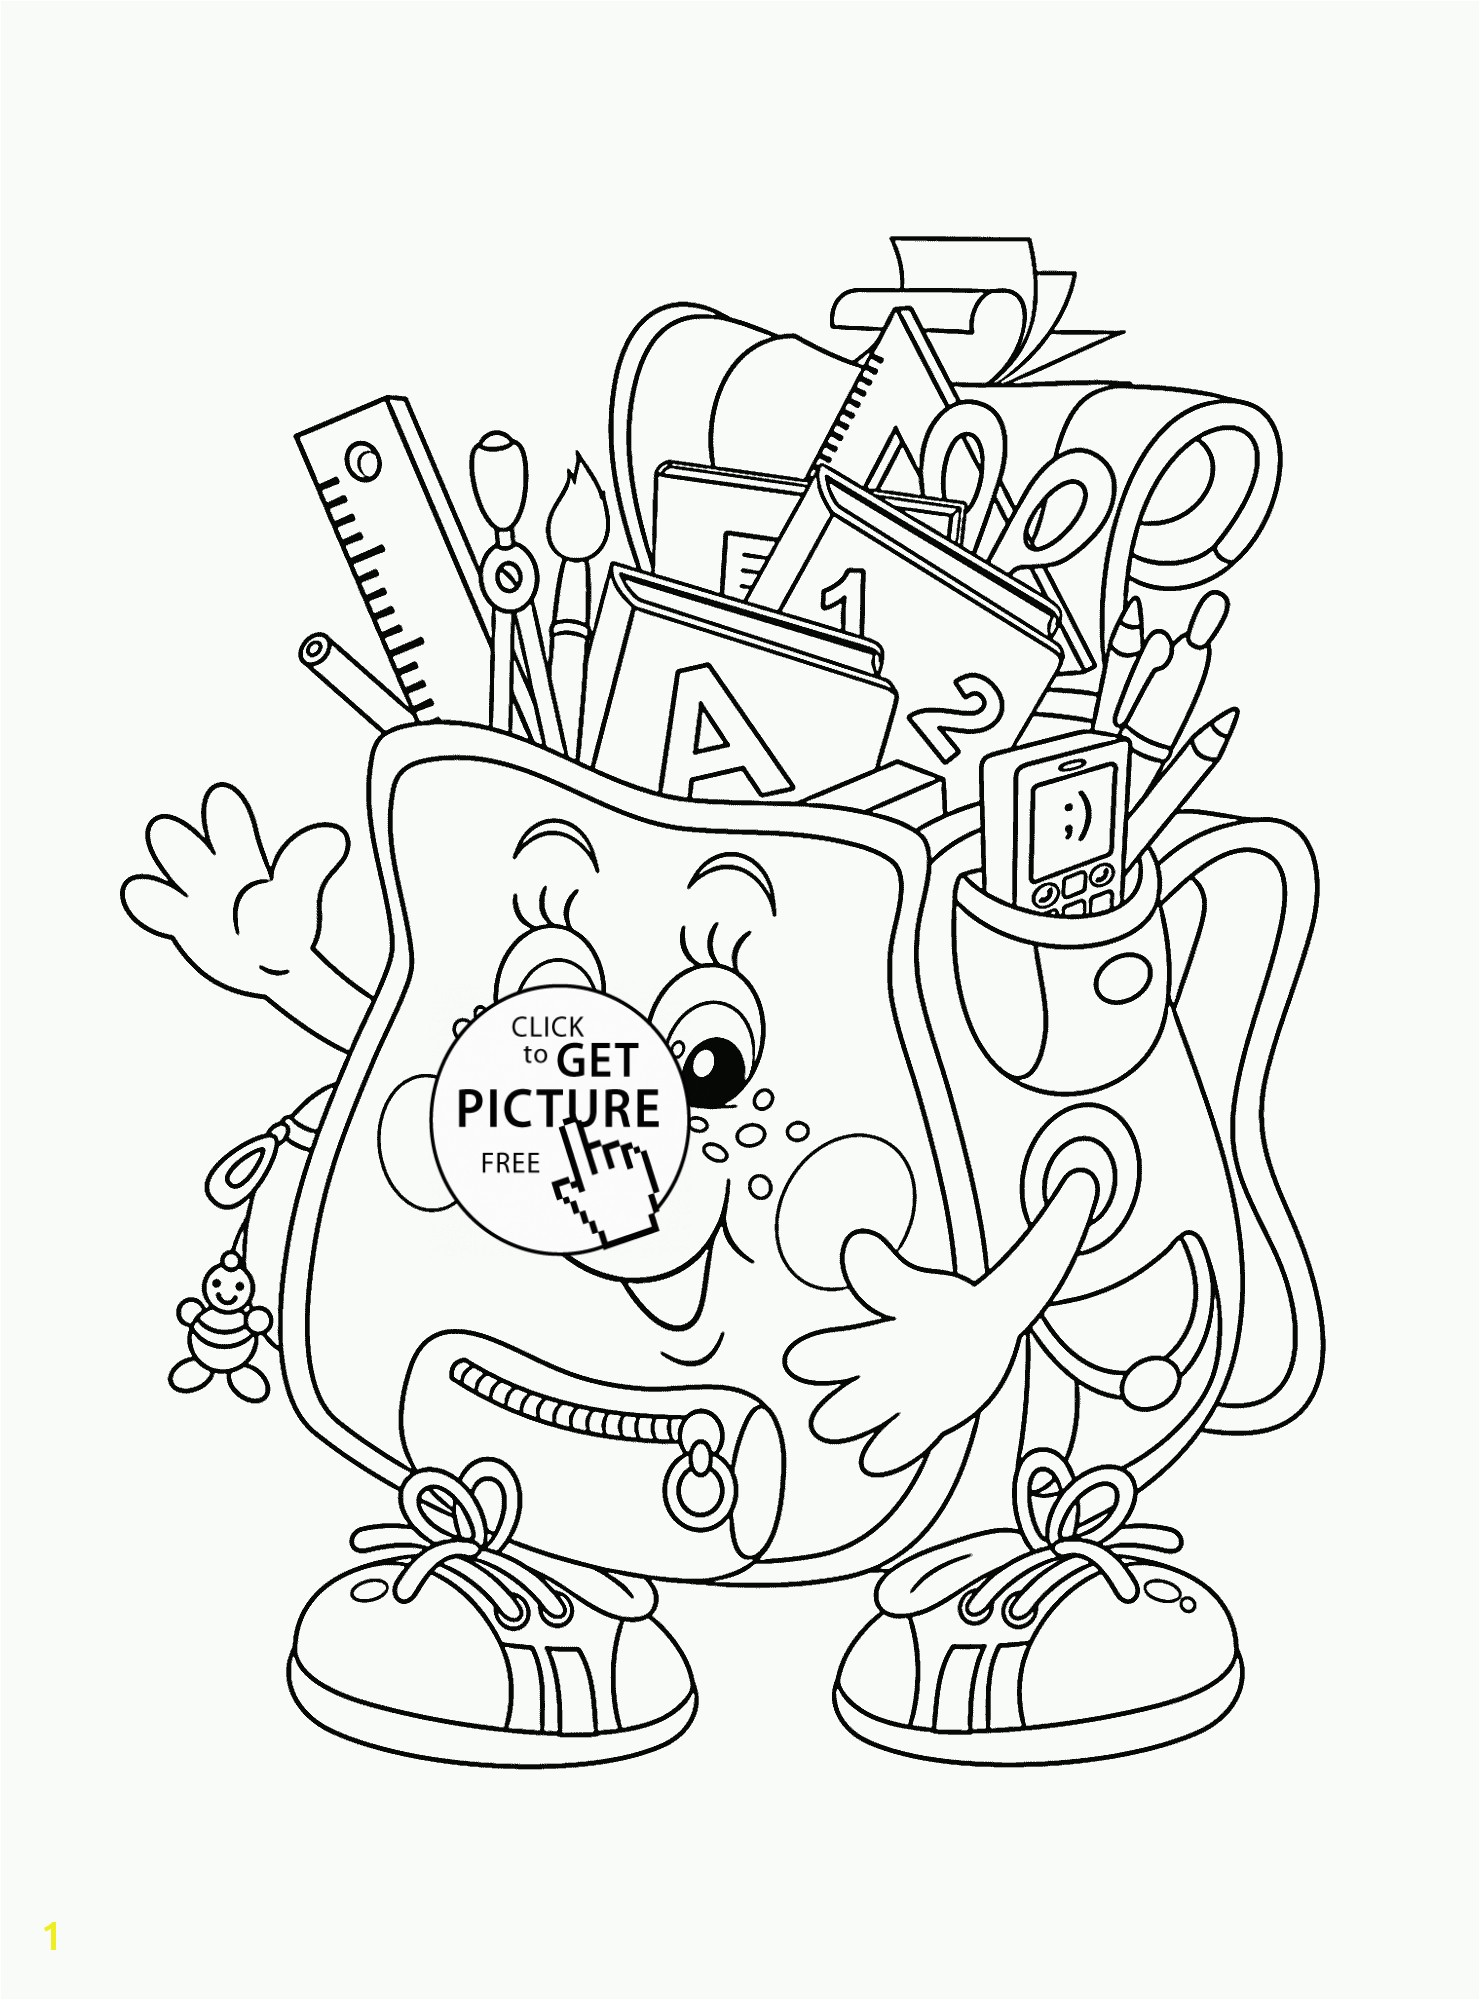 Dental Coloring Pages Awesome Dental Coloring Sheet Gallery